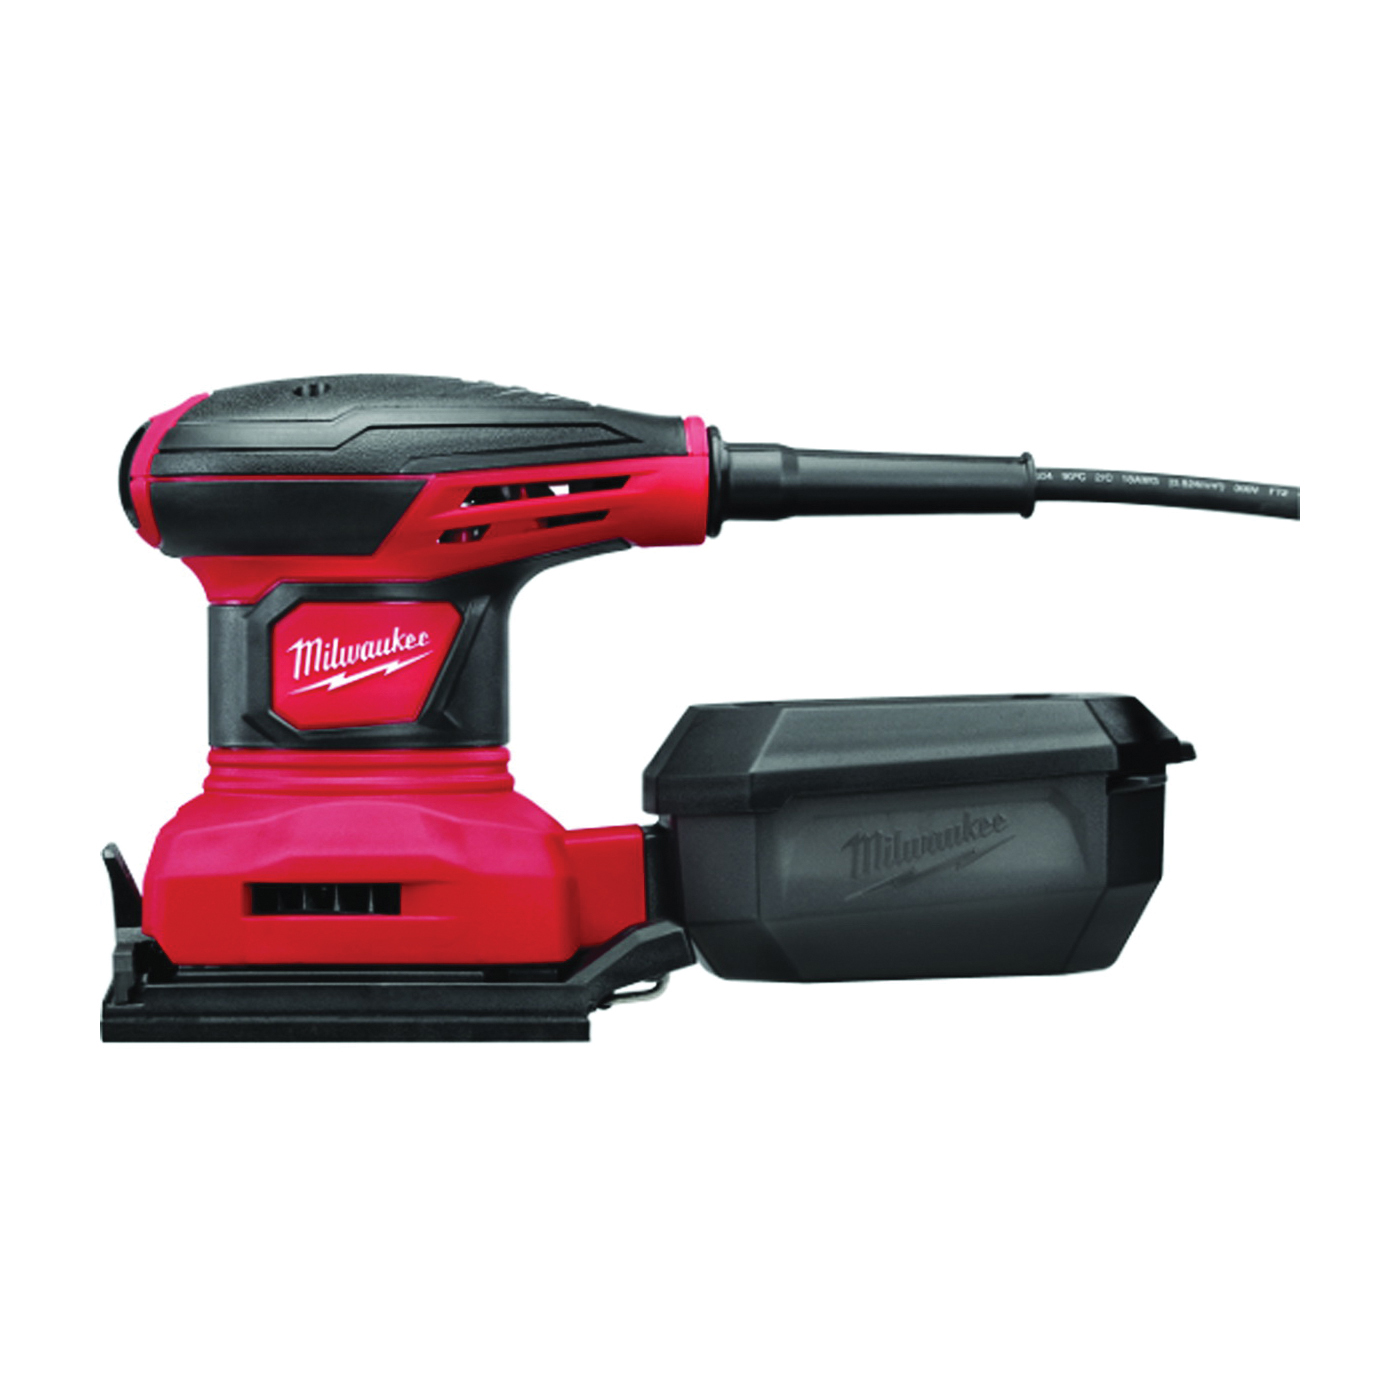 Picture of Milwaukee 6033-21 Palm Sander, 120 V, 3 A, 4-1/4 x 4 in Pad, 14000 opm No Load